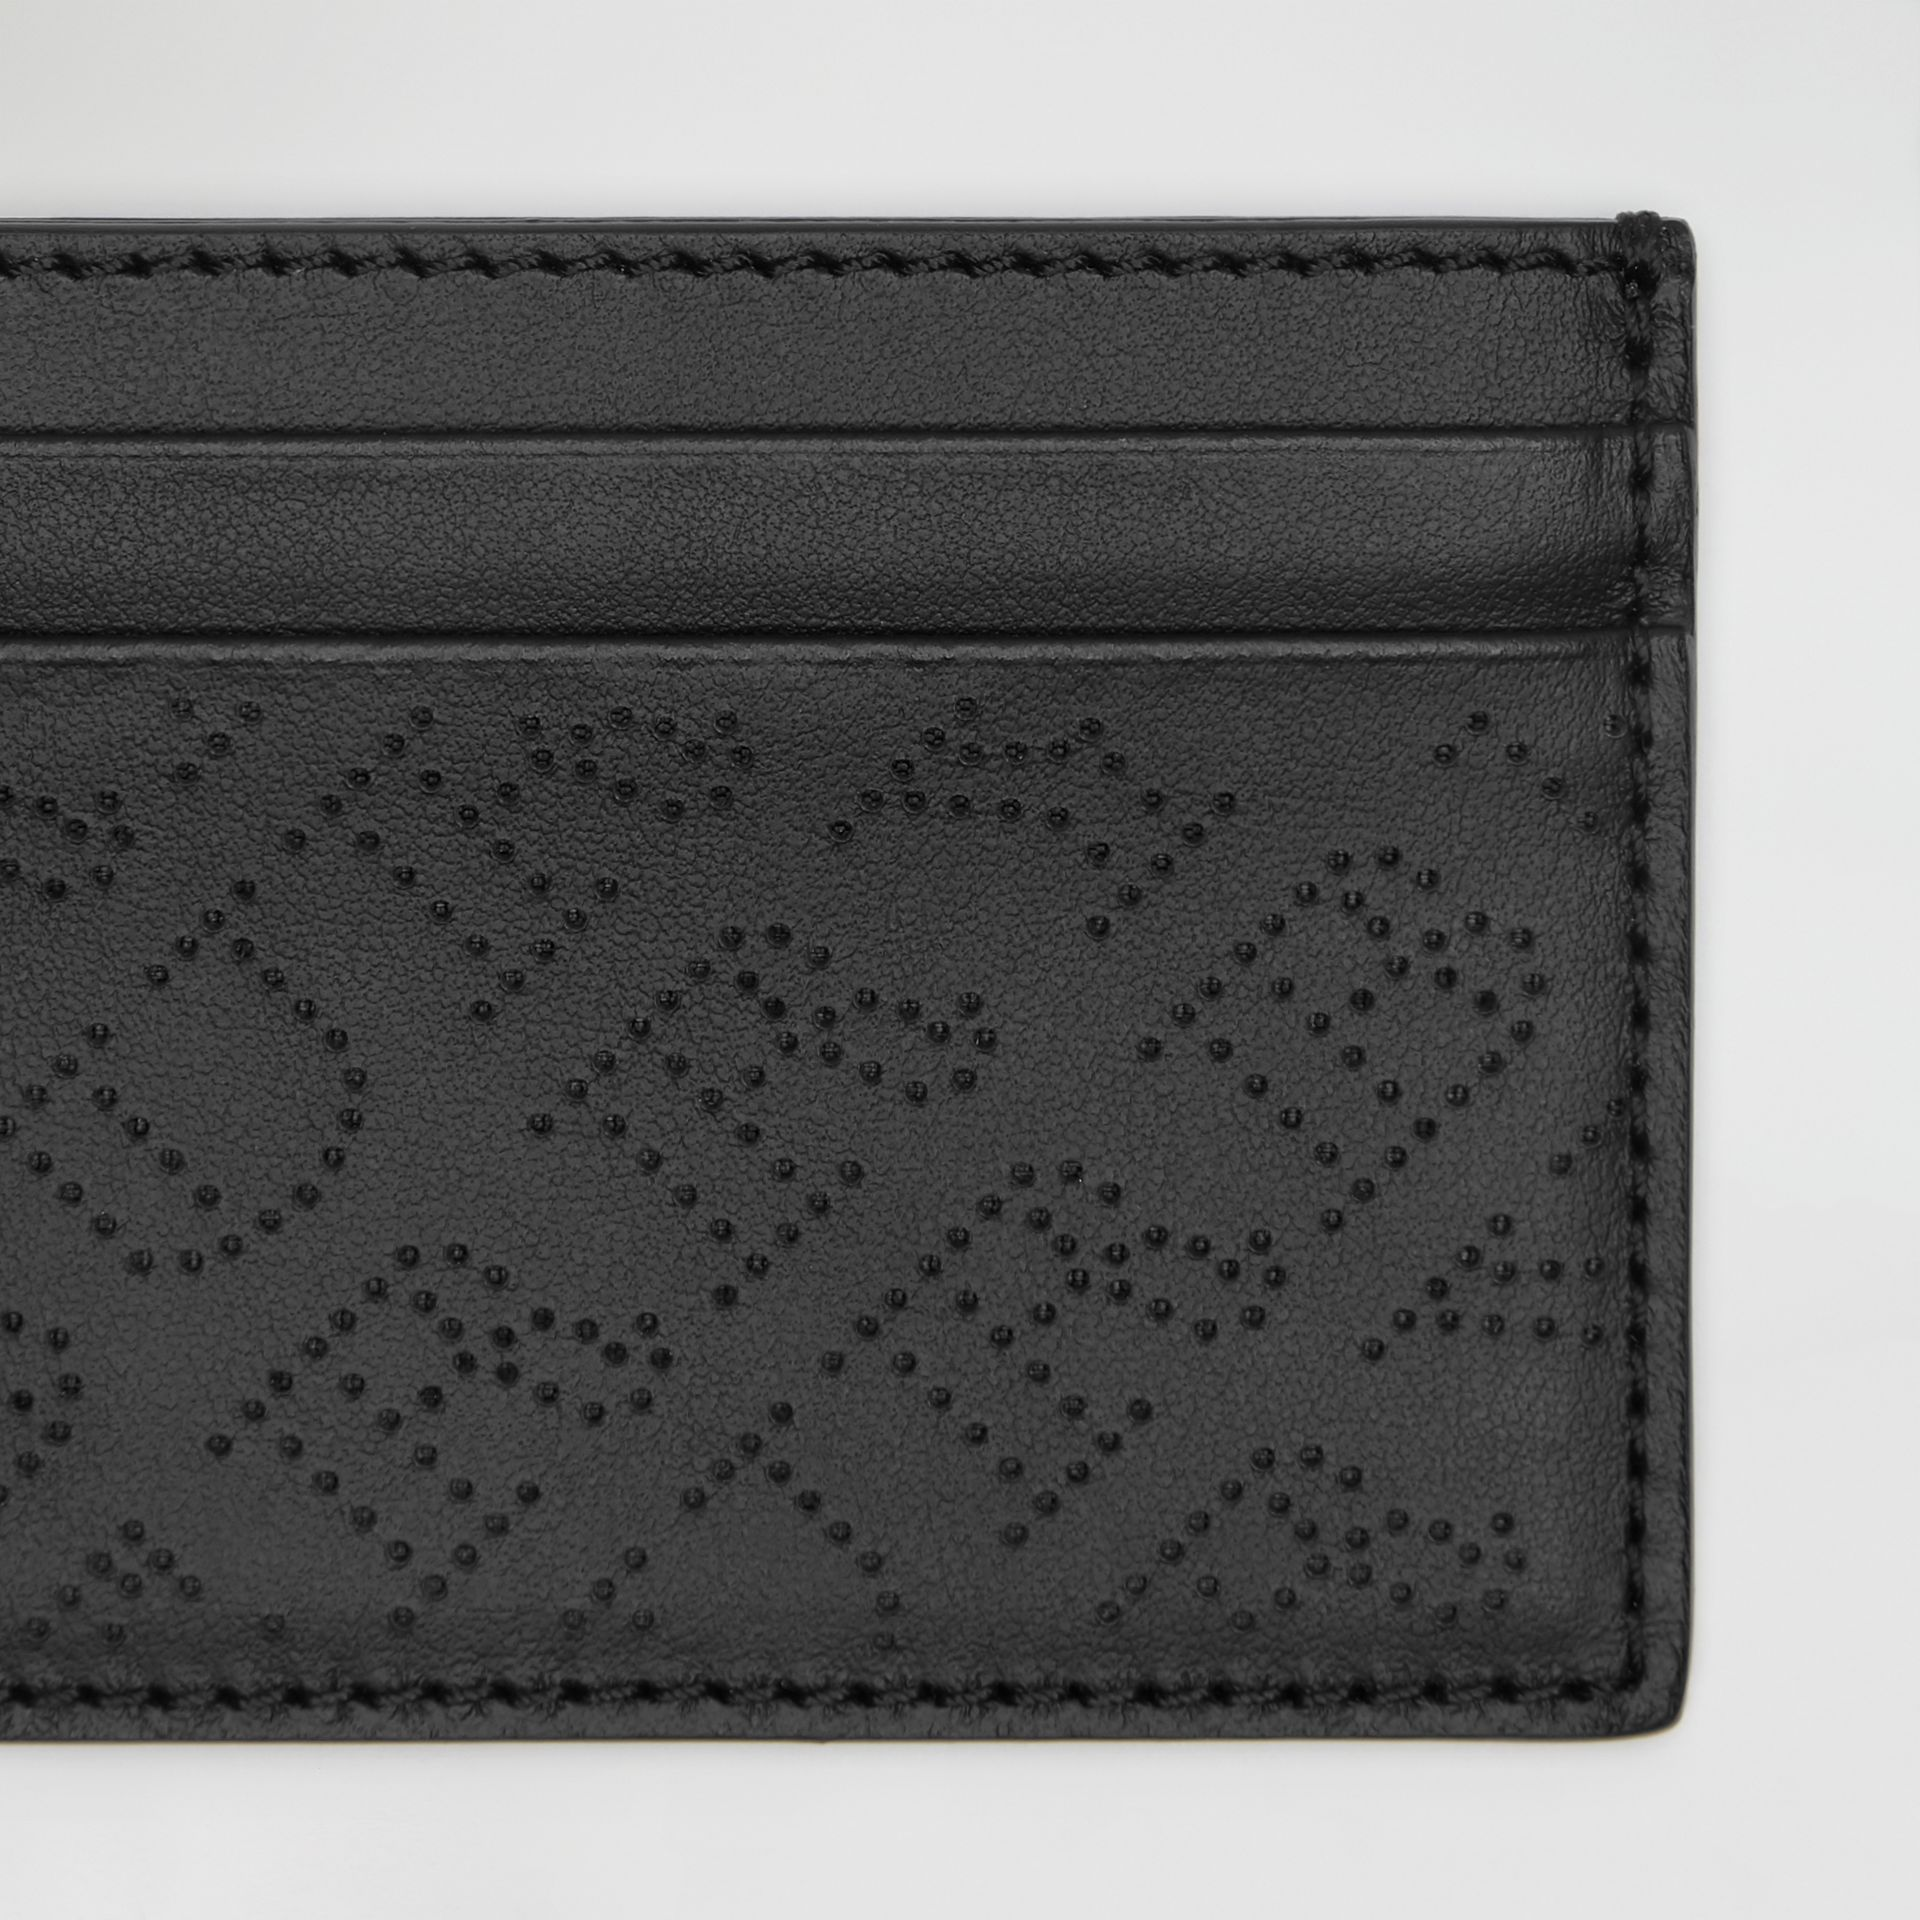 Perforated Logo Leather Card Case in Black - Women | Burberry Hong Kong - gallery image 1